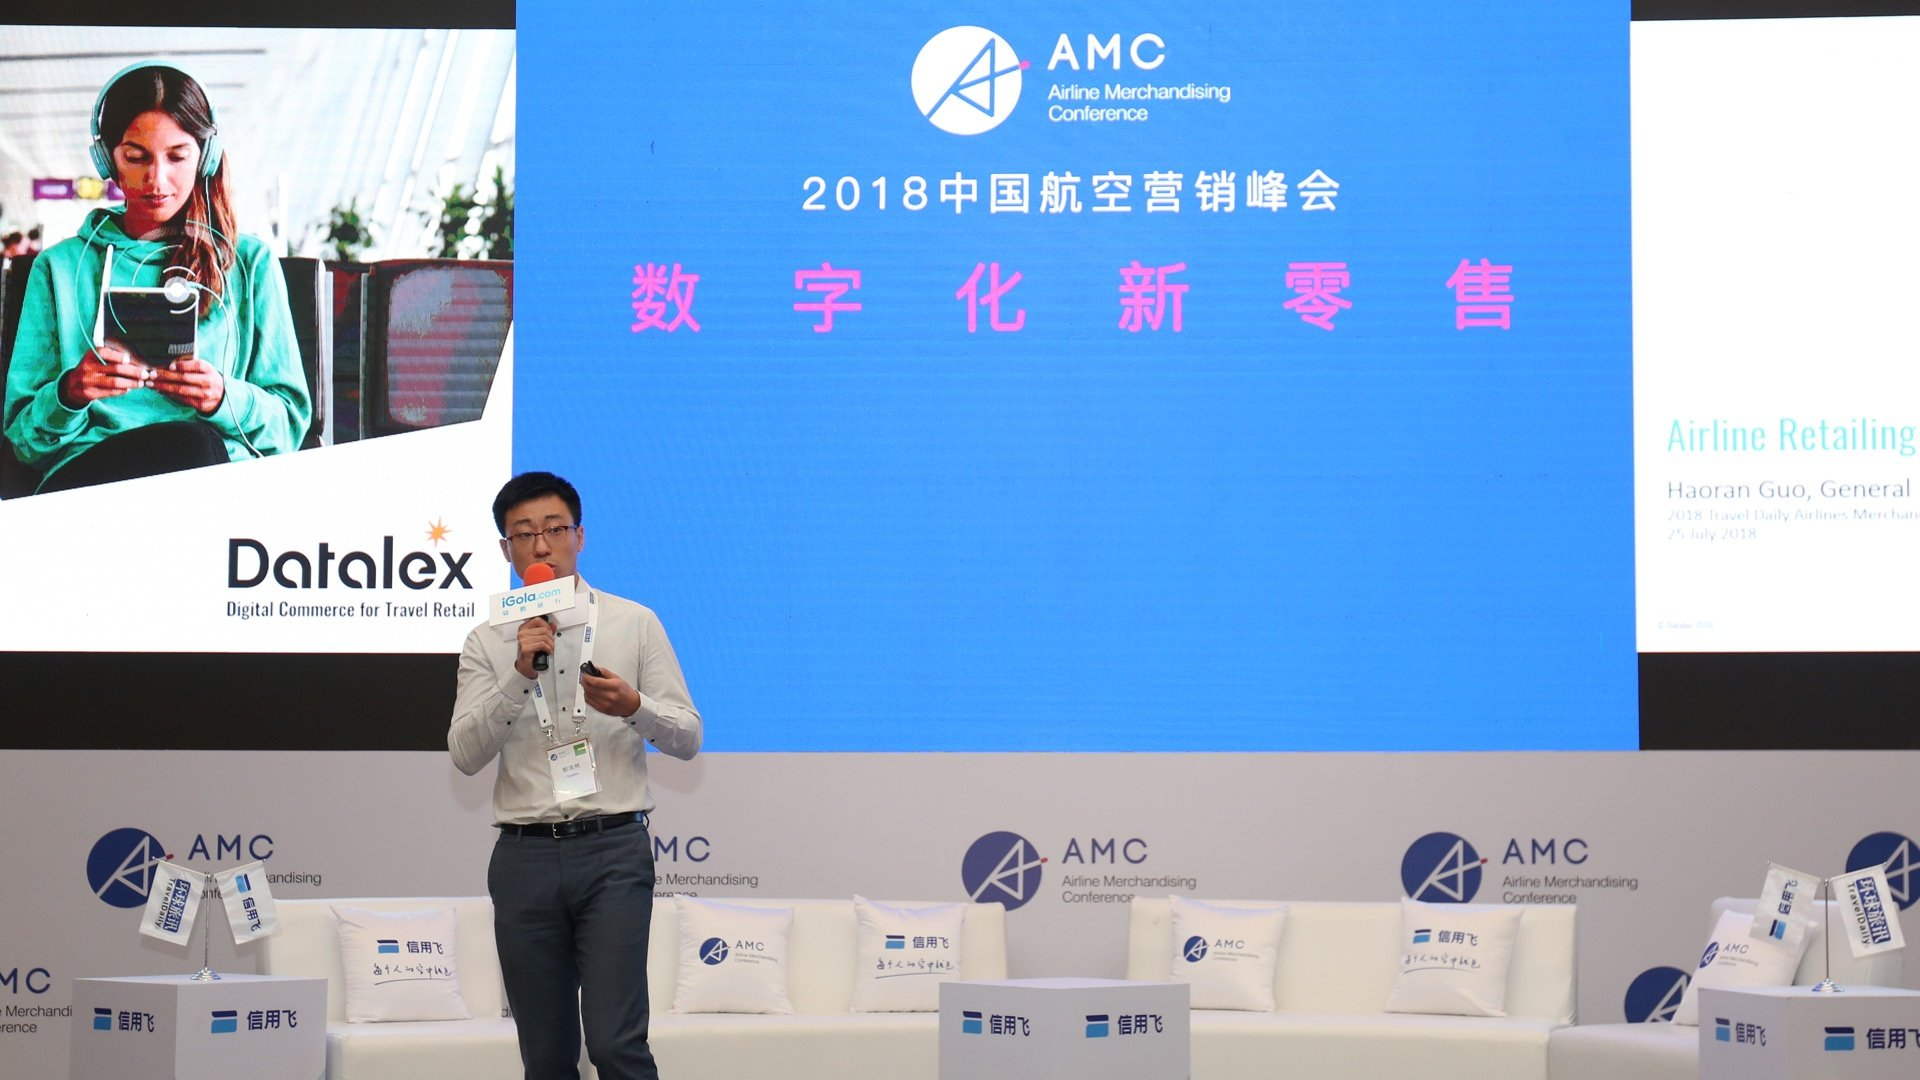 Chris Kwok Keynote Speaker at AMC